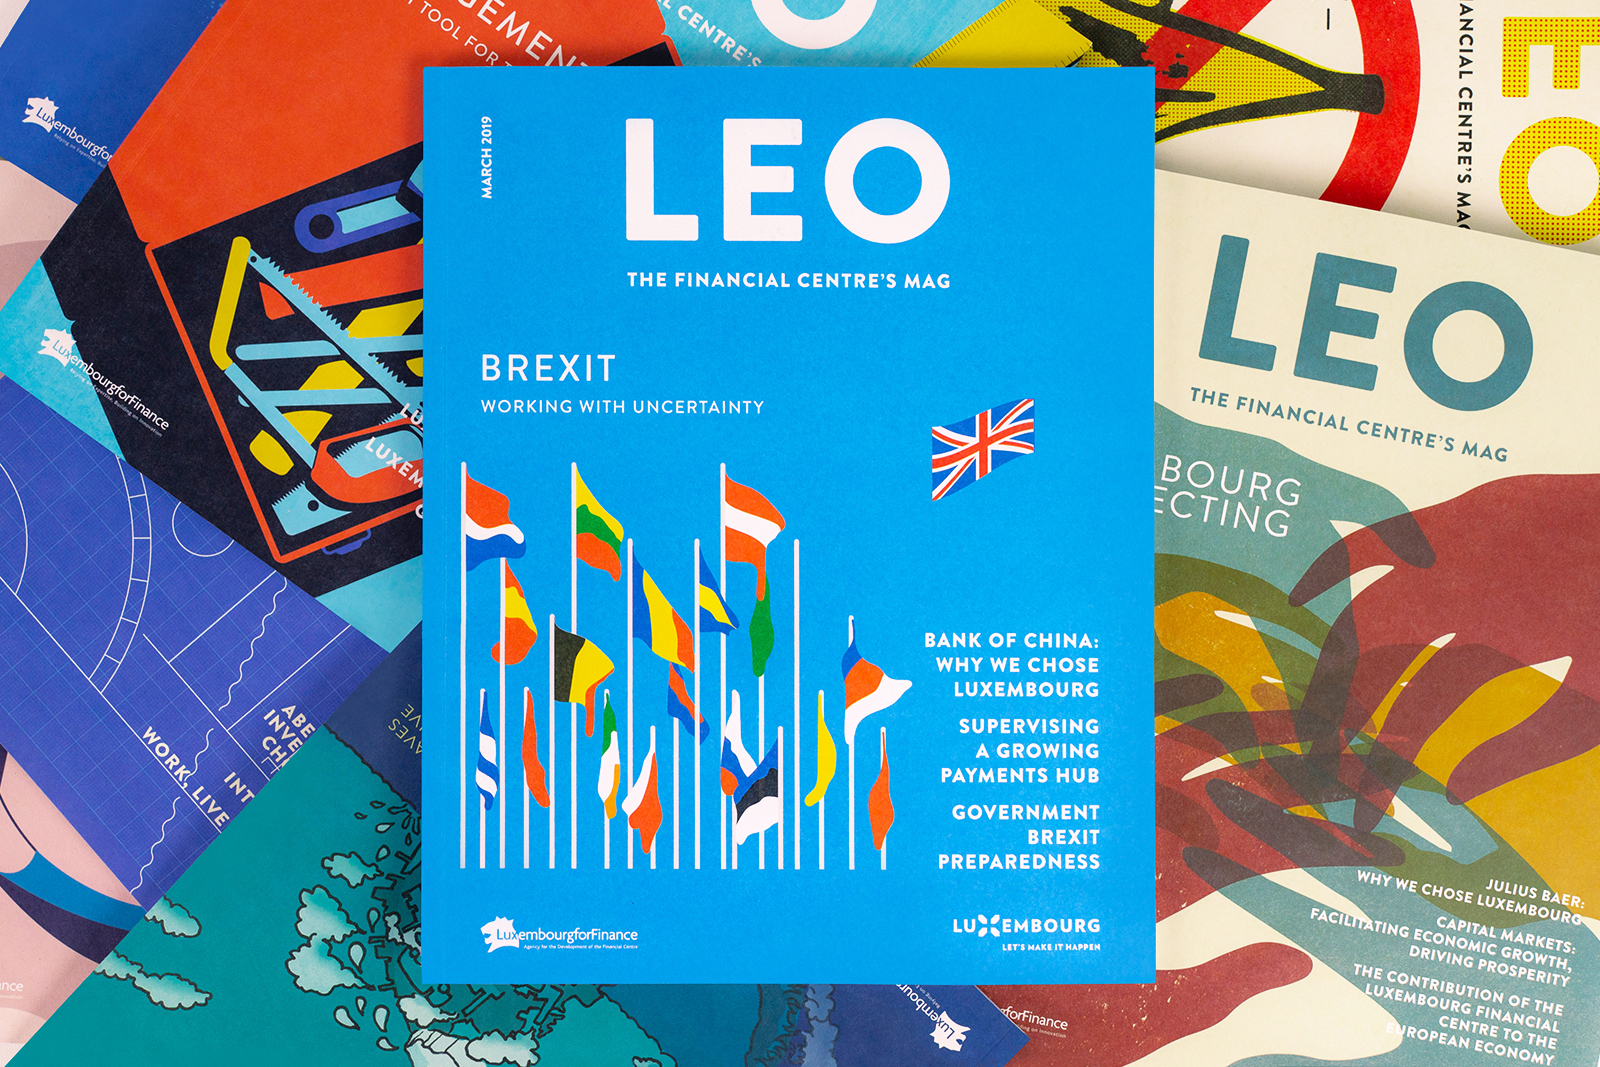 LEO Magazine Cover Designs by O Street